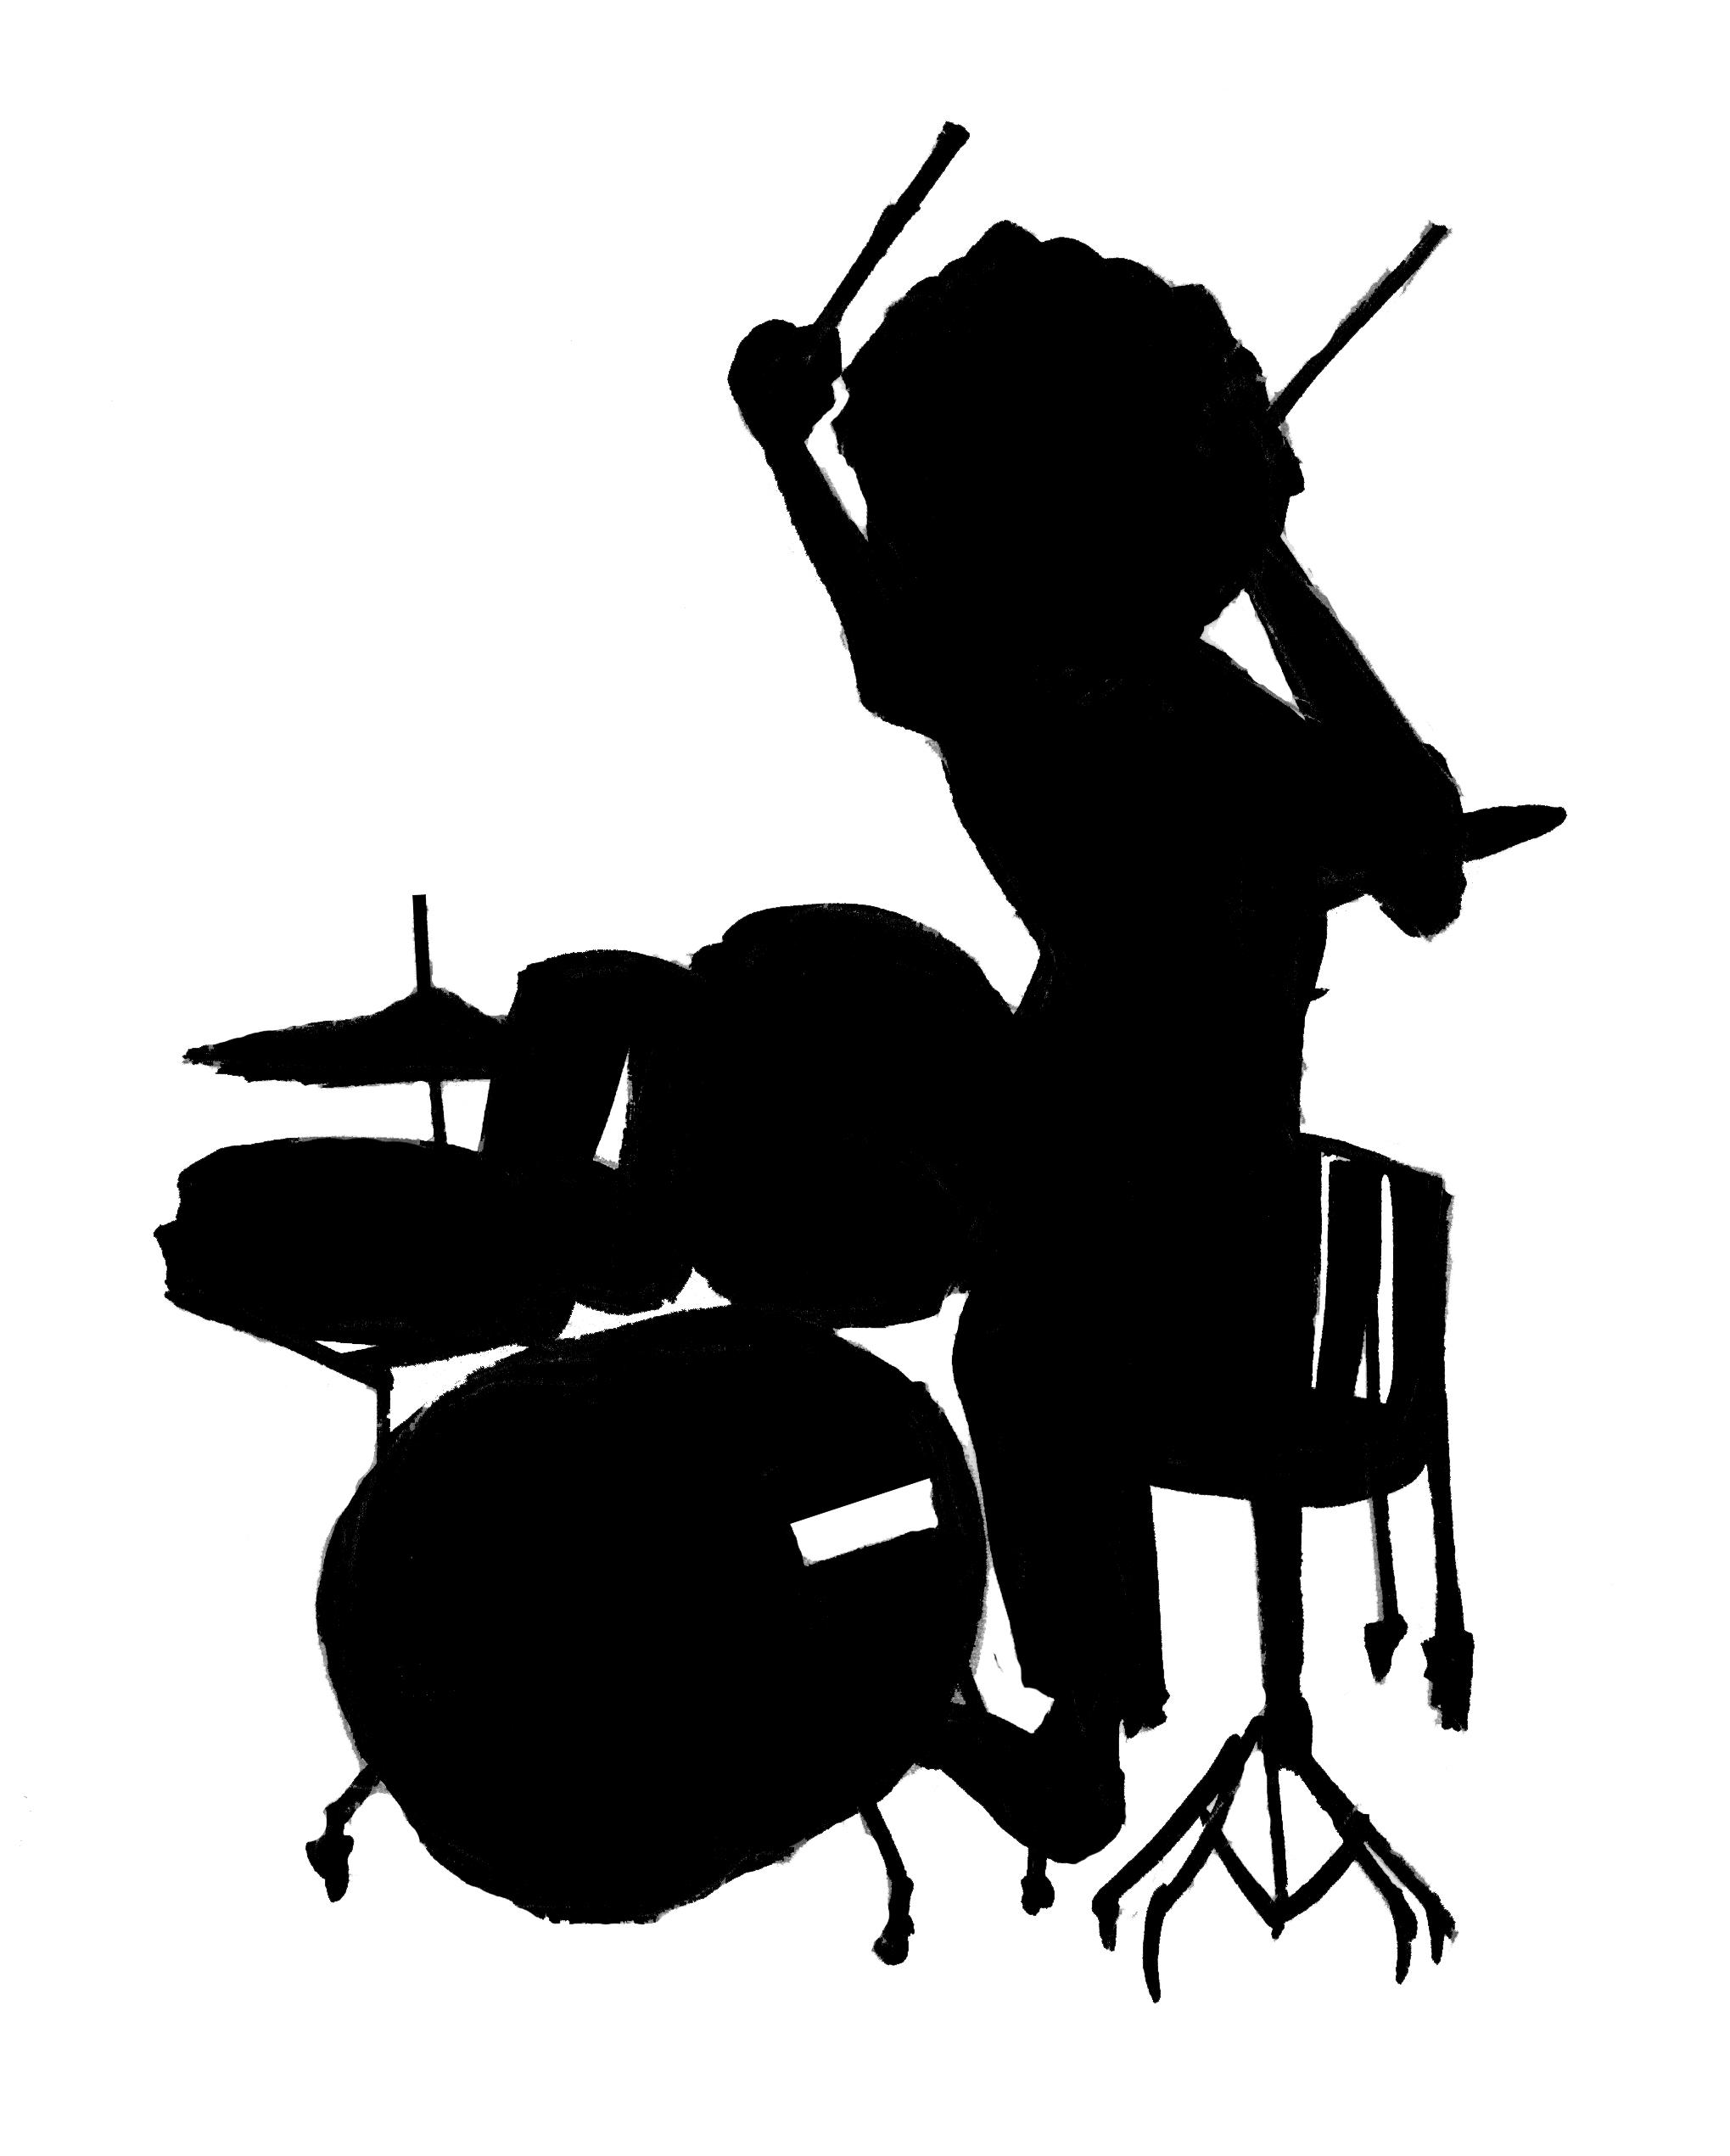 2039x2541 Unique Drum Set Silhouette Drummer File Free